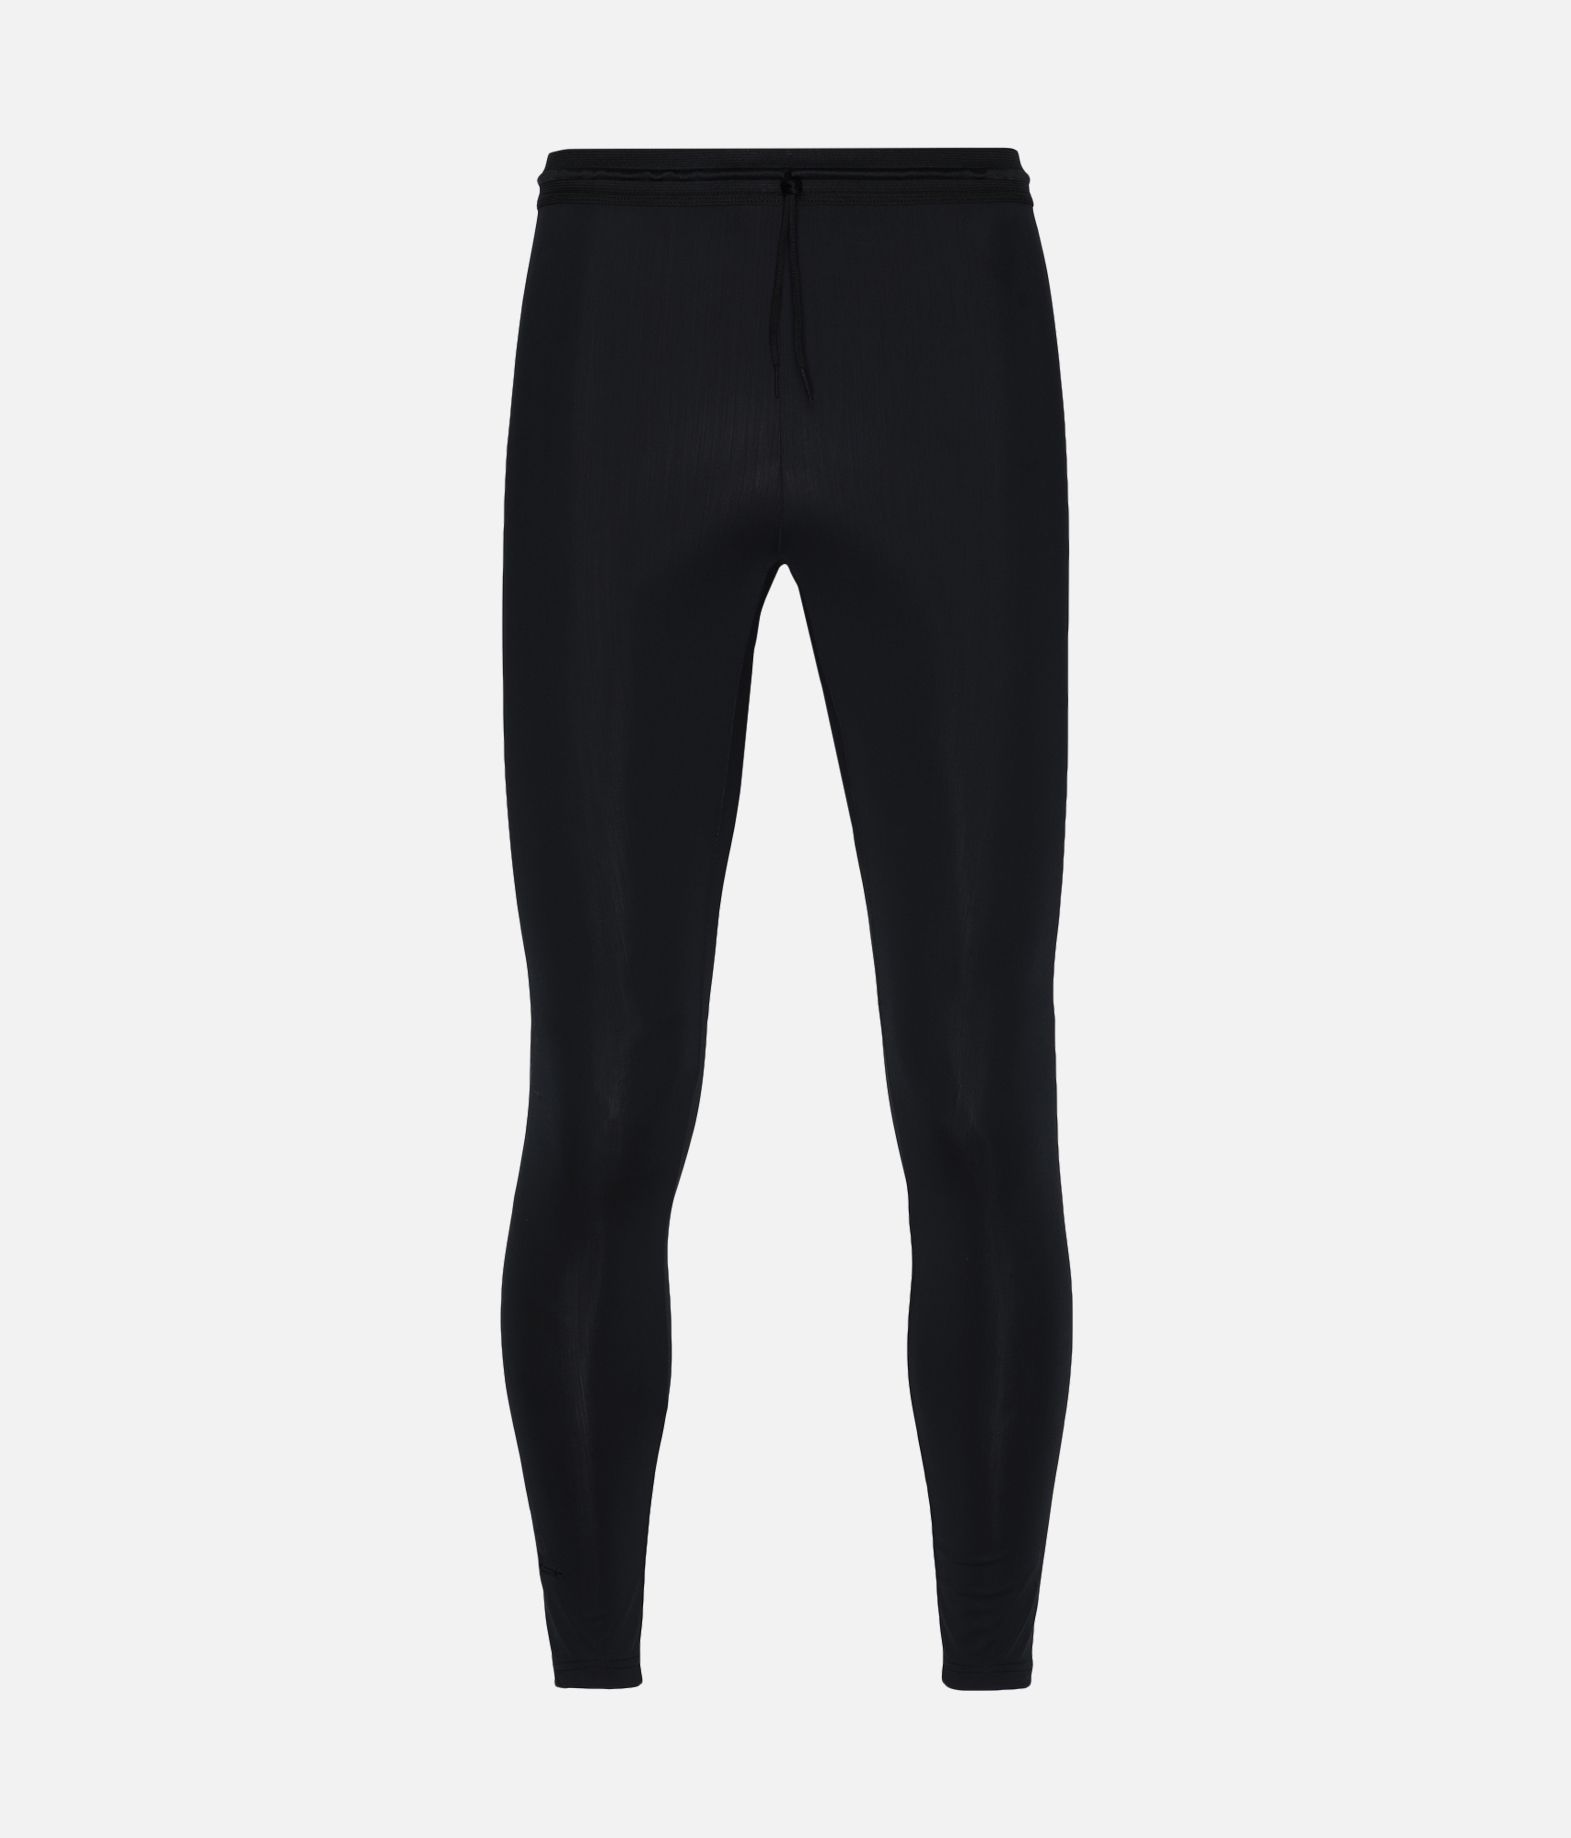 Y-3 Y-3 New Classic Tights Leggings Man f